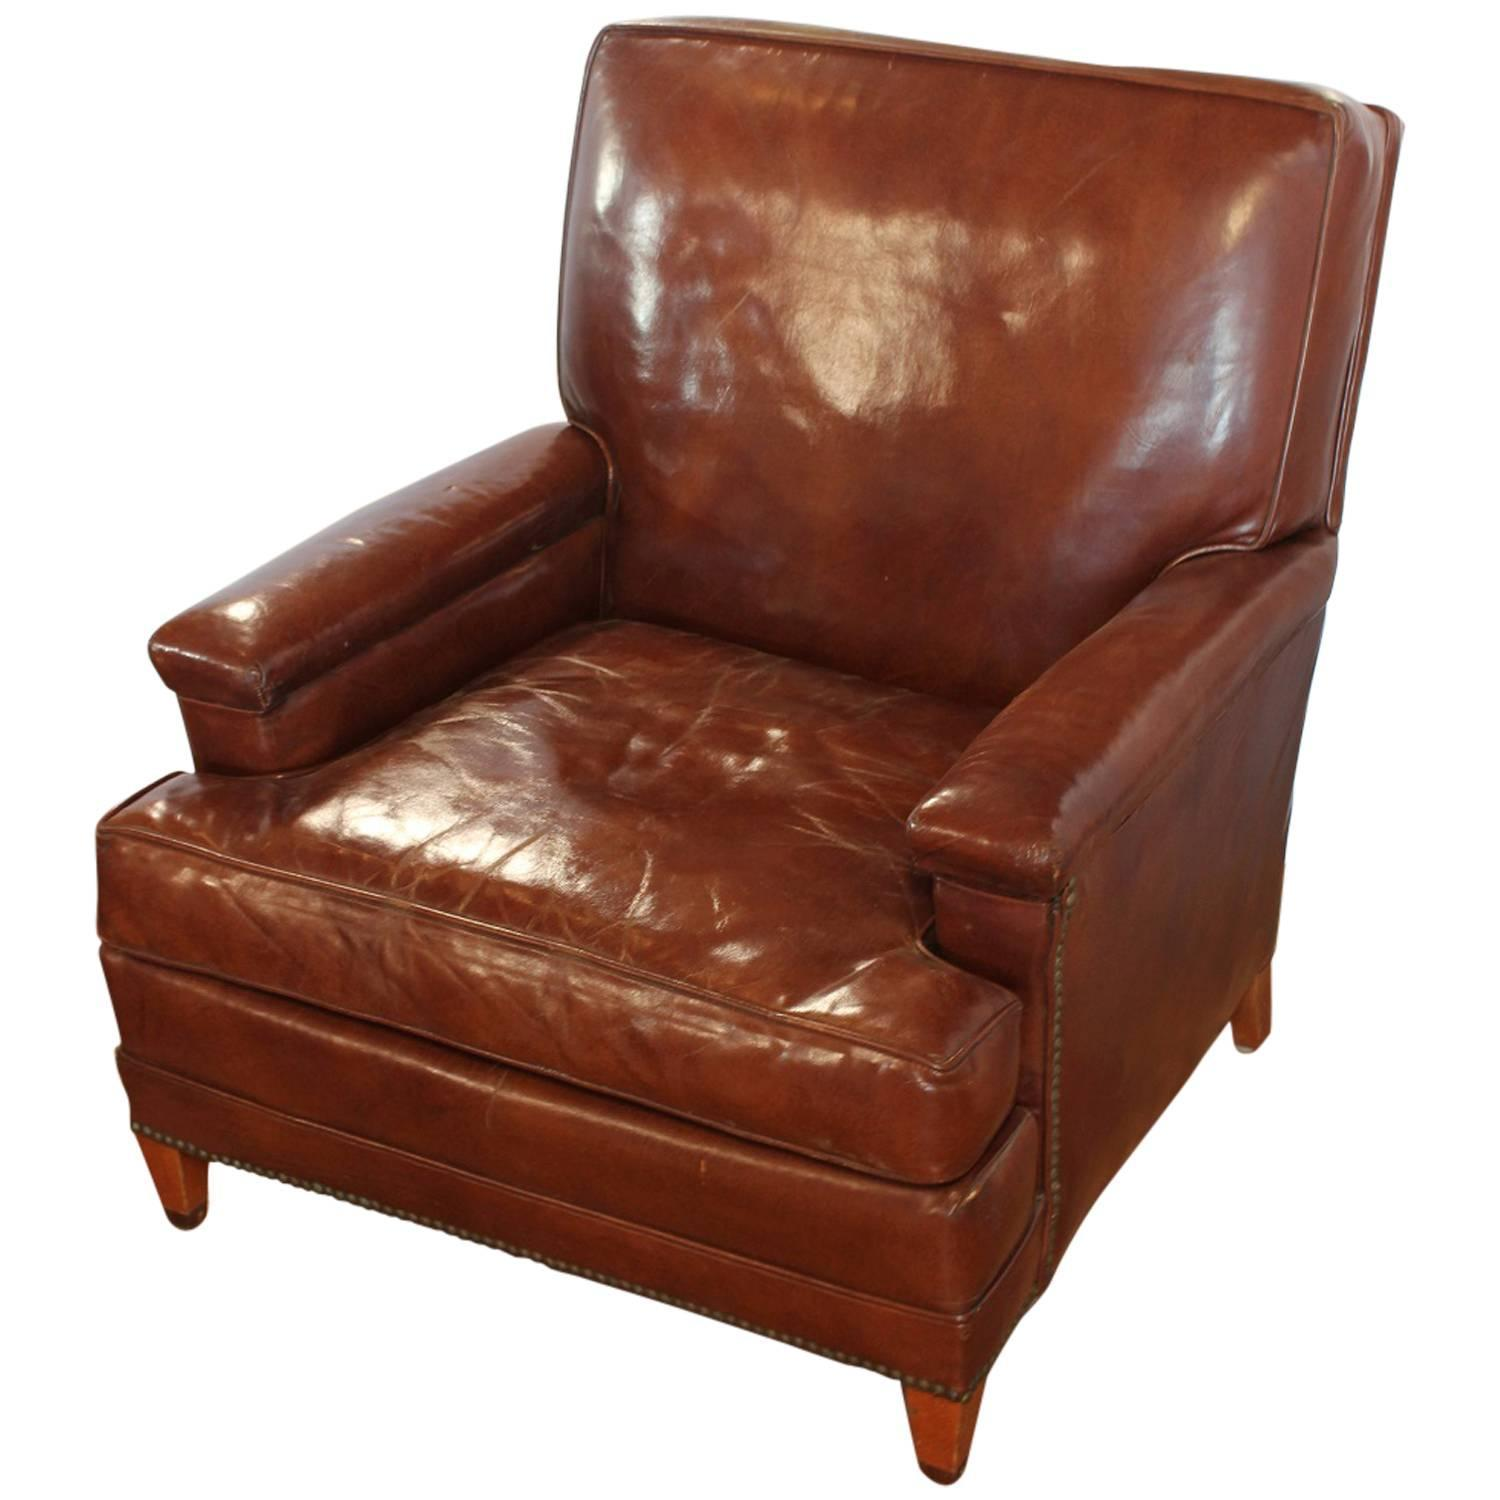 Antique Leather Club Chair at 1stdibs